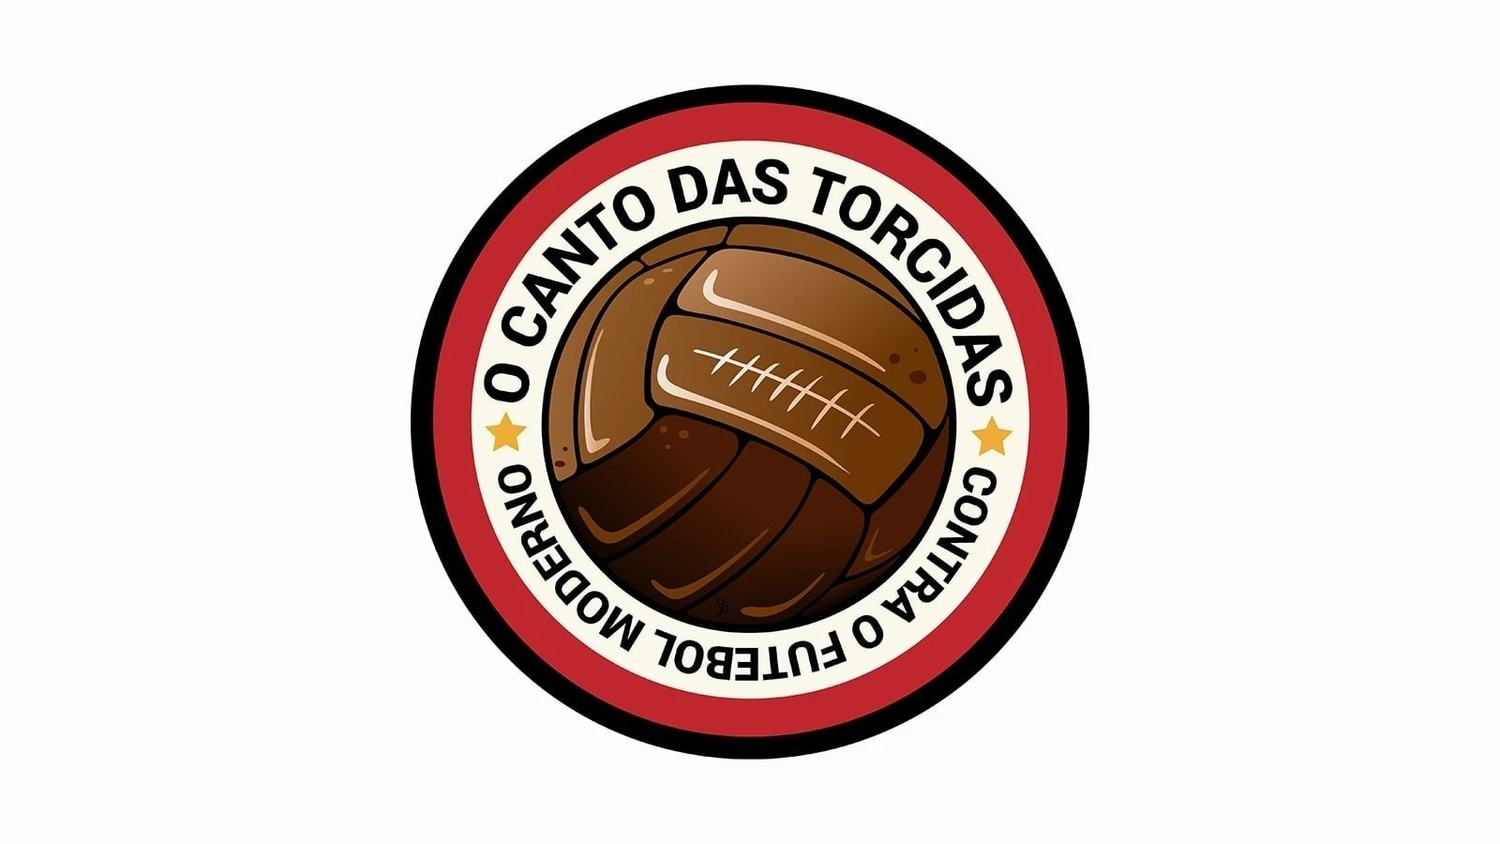 Introducing: O Canto Das Torcidas!